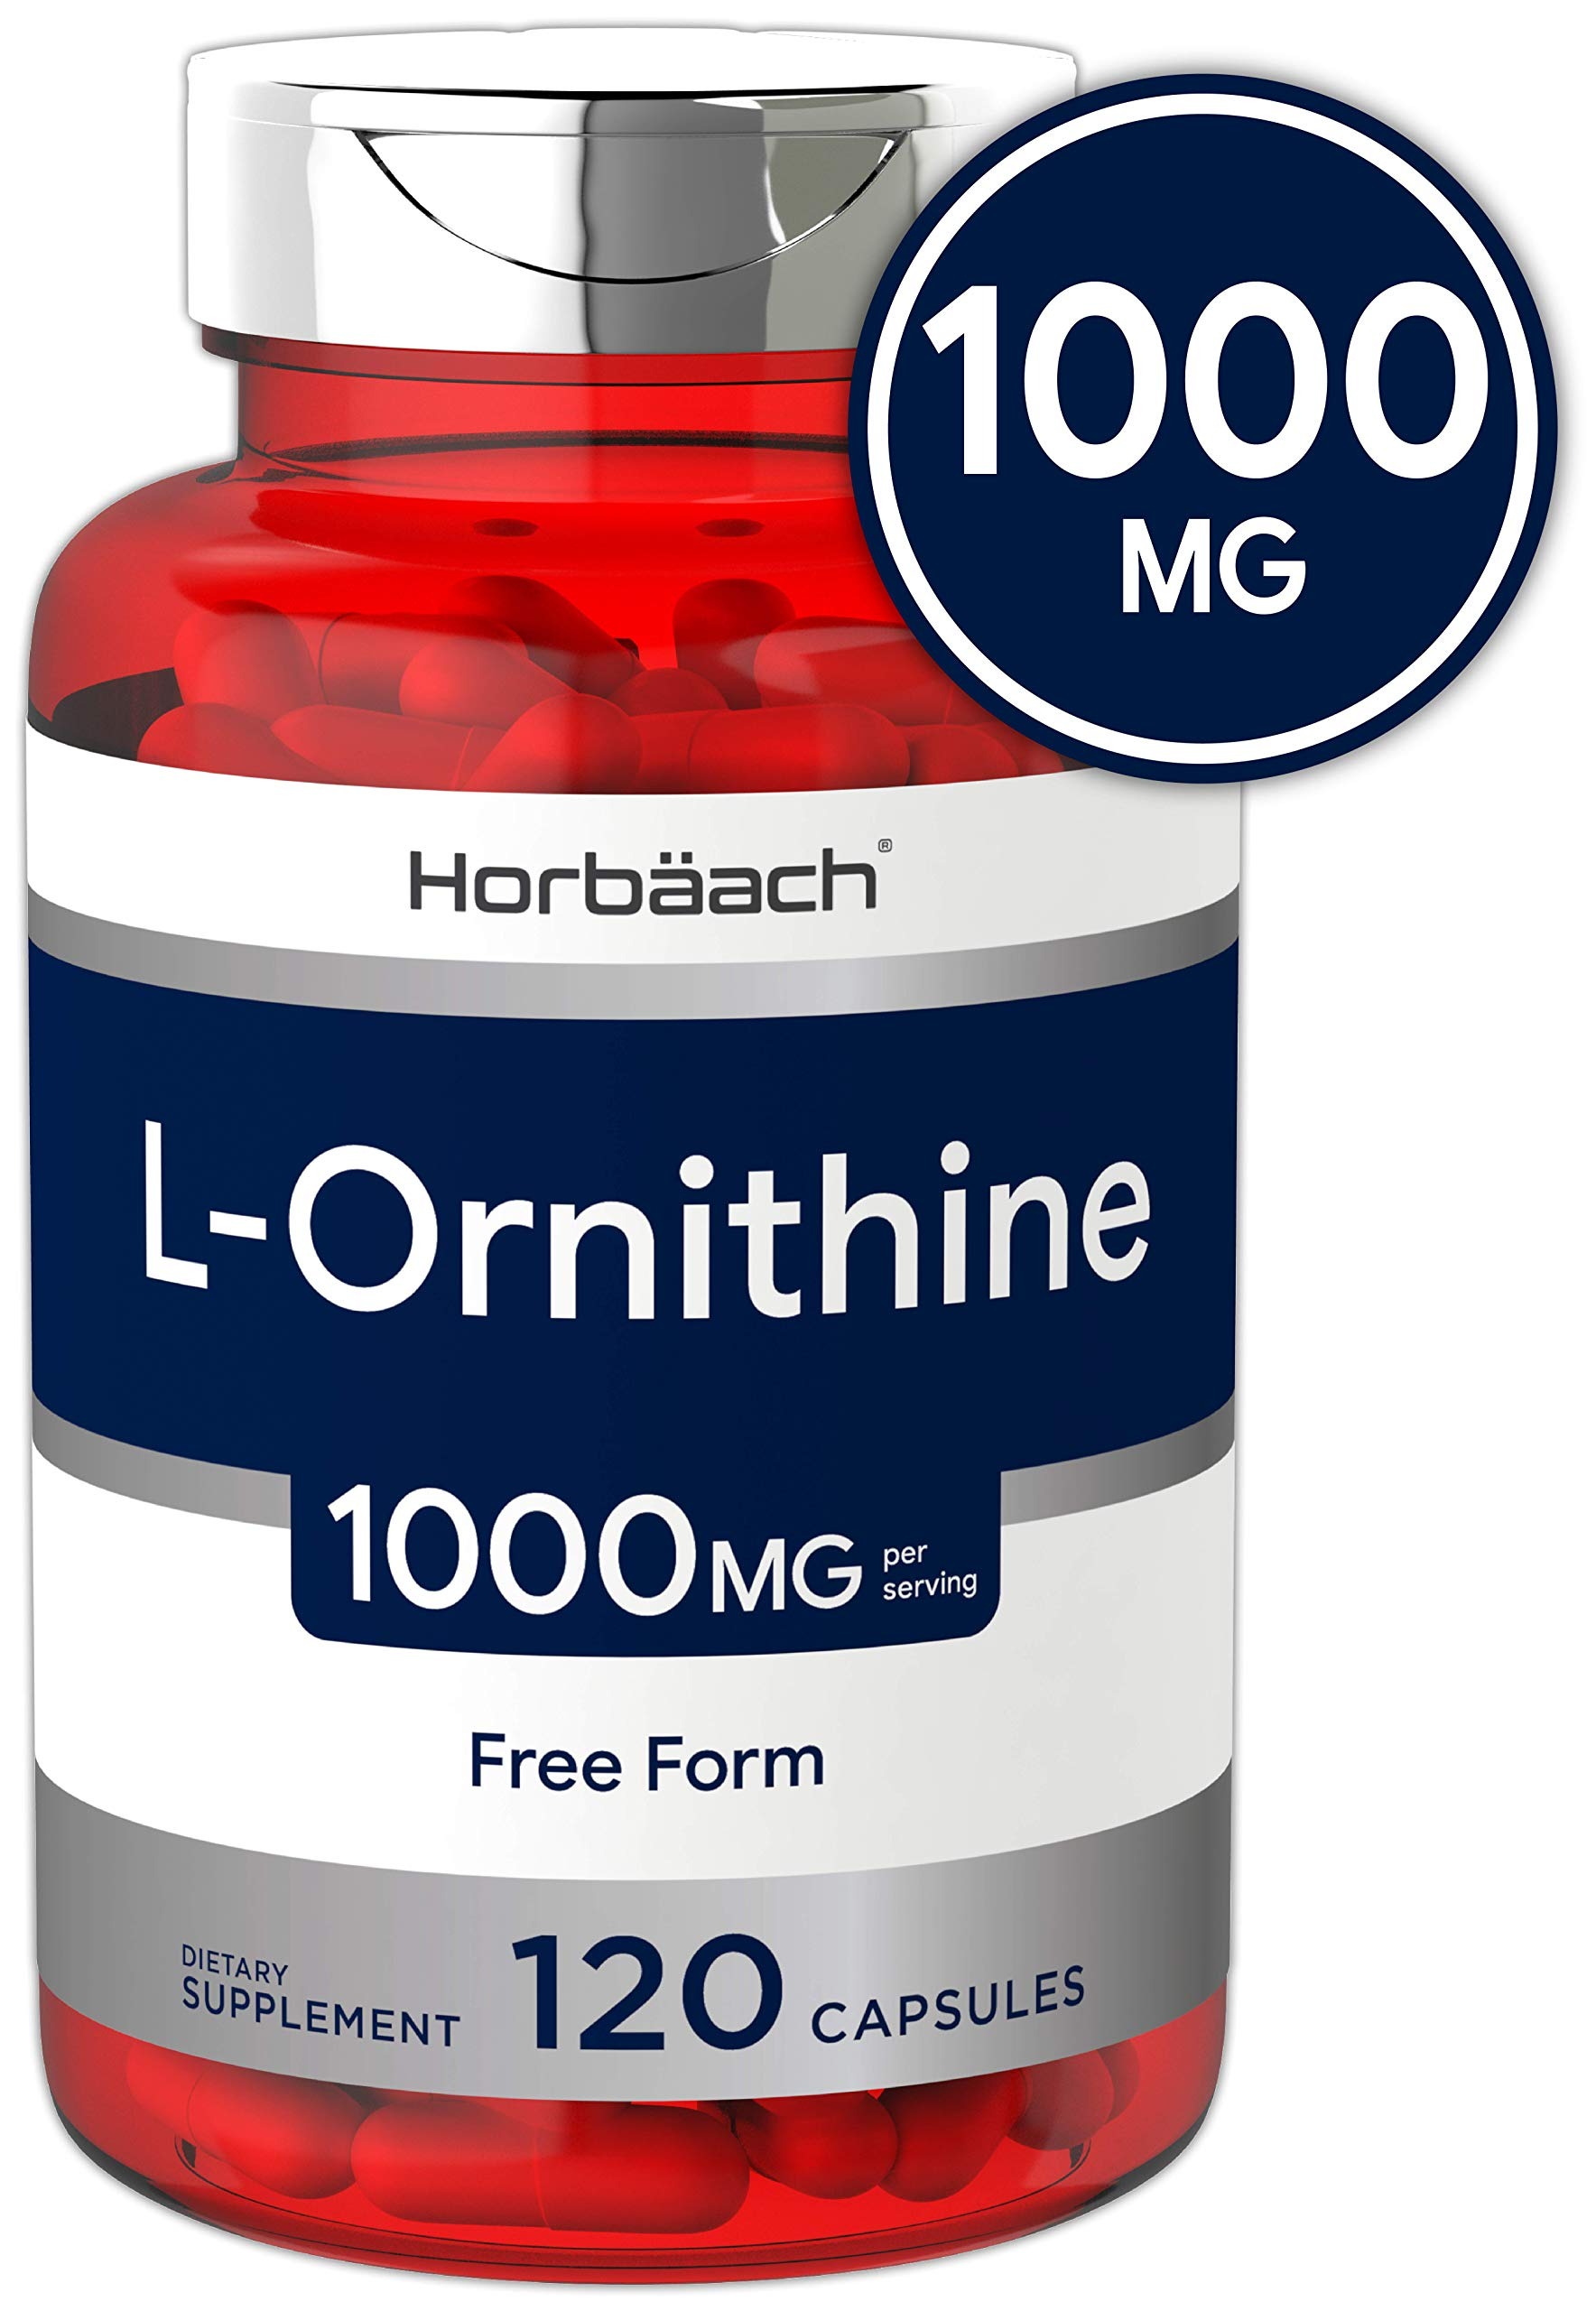 Horbaach L Ornithine 1000 mg | 120 Capsules | Non-GMO, Gluten Free | Free Form L-Ornithine by Horbäach